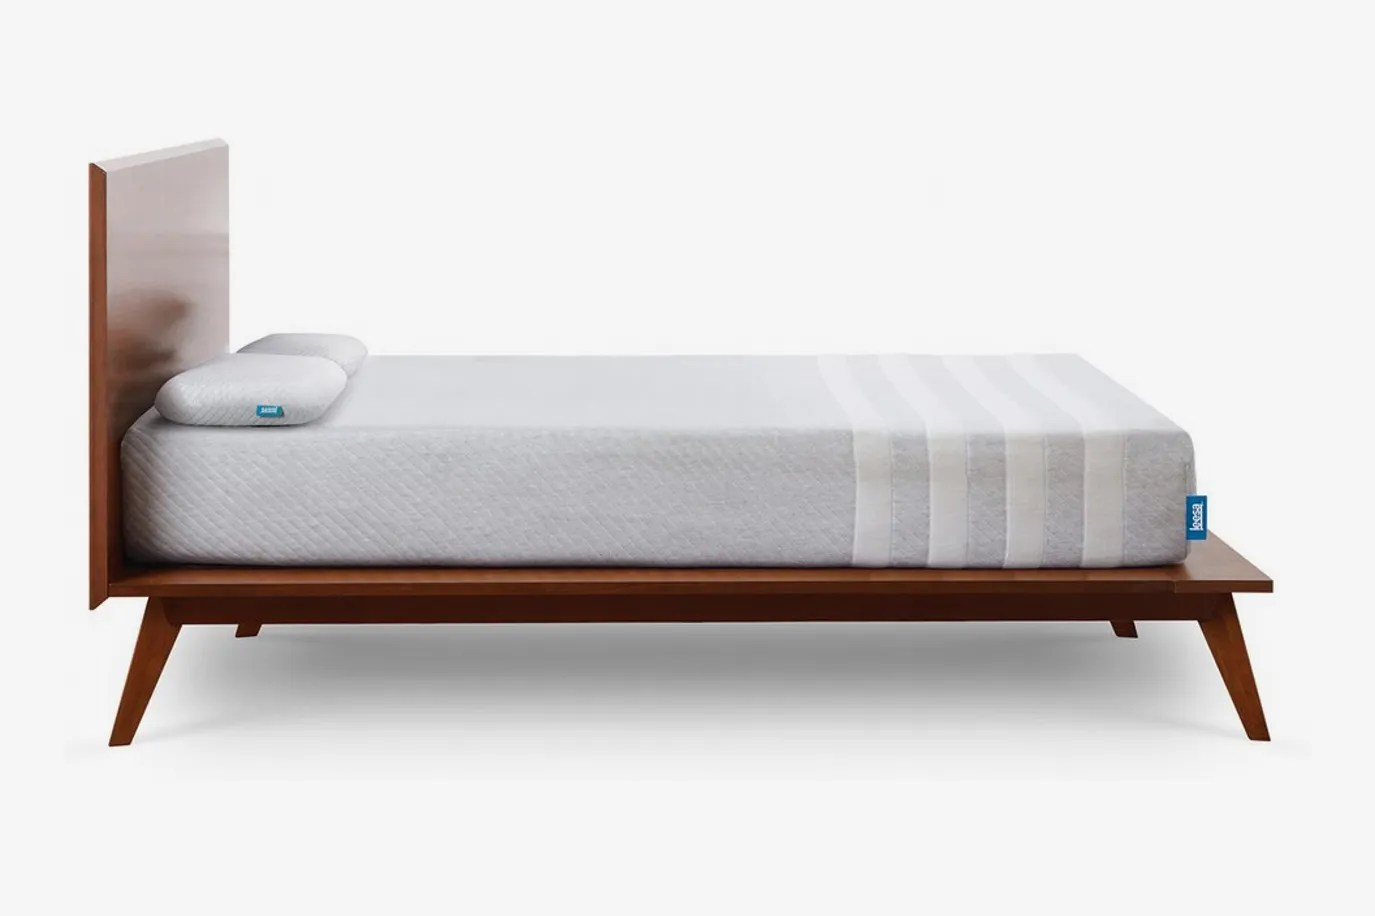 Inexpensive Full Size Mattress The Best Online Mattresses You Can Buy